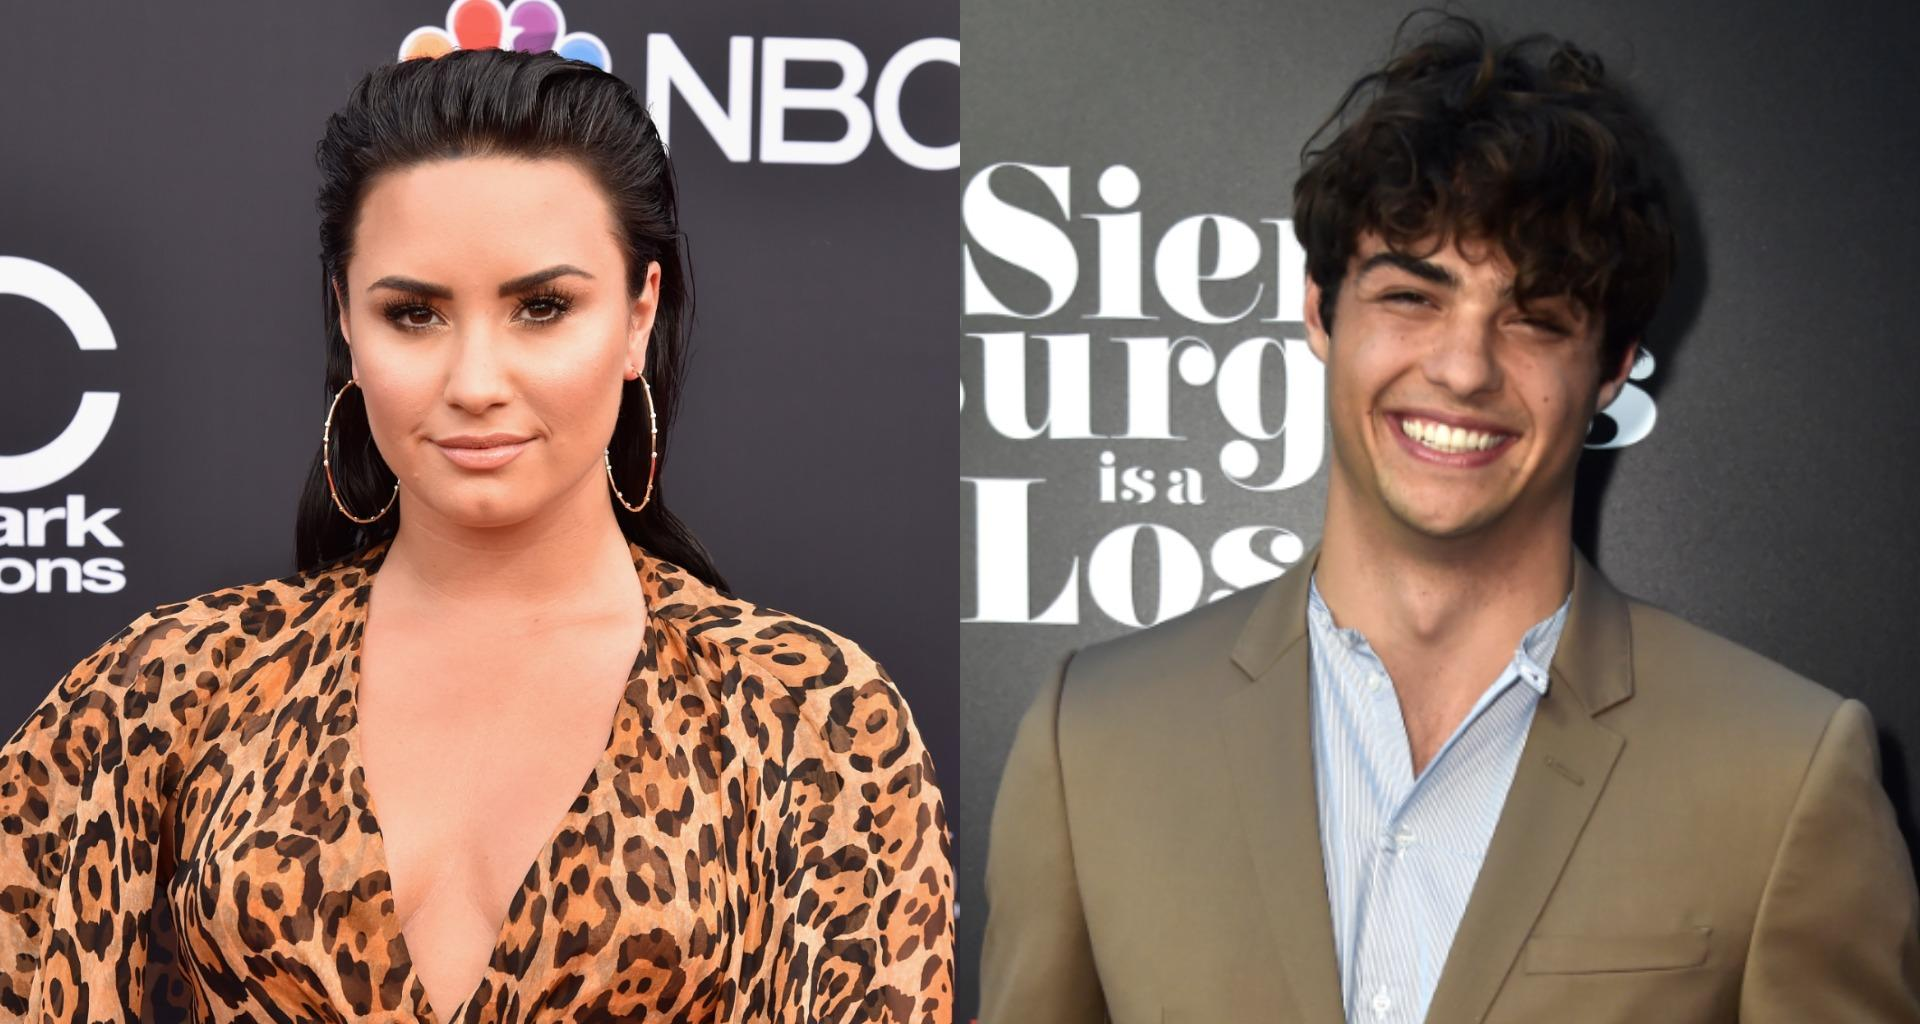 Demi Lovato Follows Noah Centineo And Social Media Is Freaking Out!